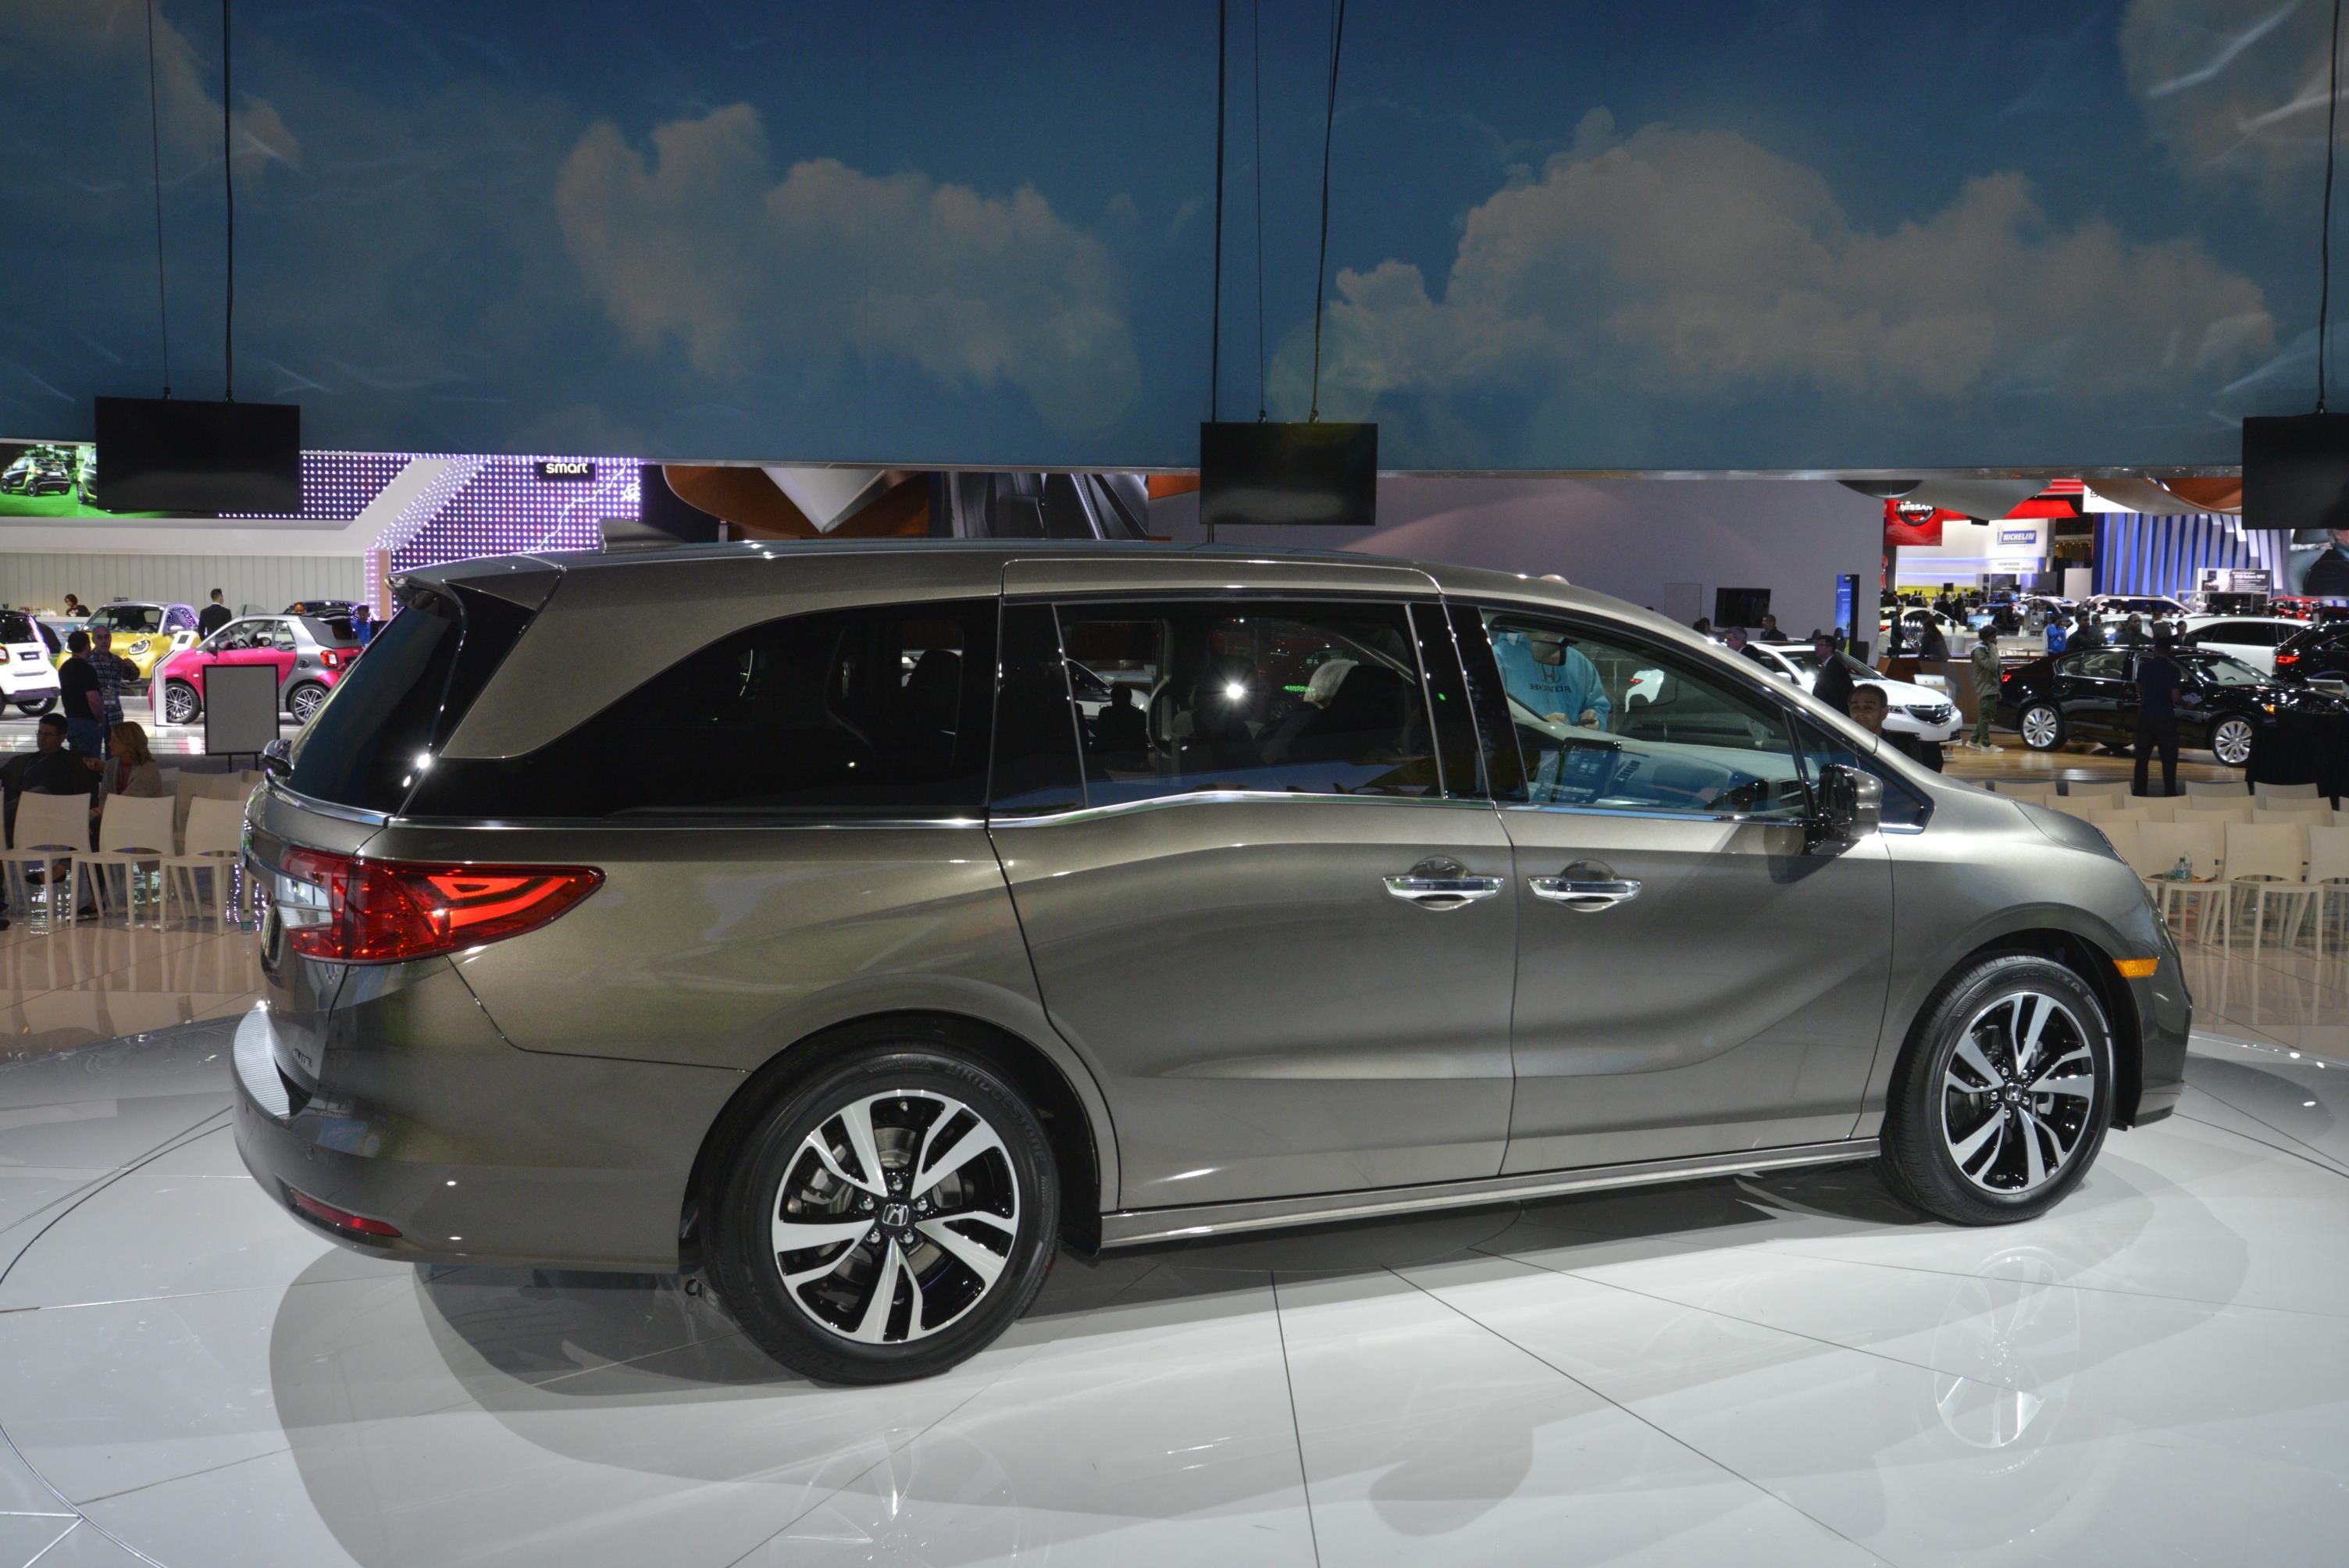 2018 Honda Odyssey Shows The Chrysler Pacifica How It's Done in Detroit - autoevolution